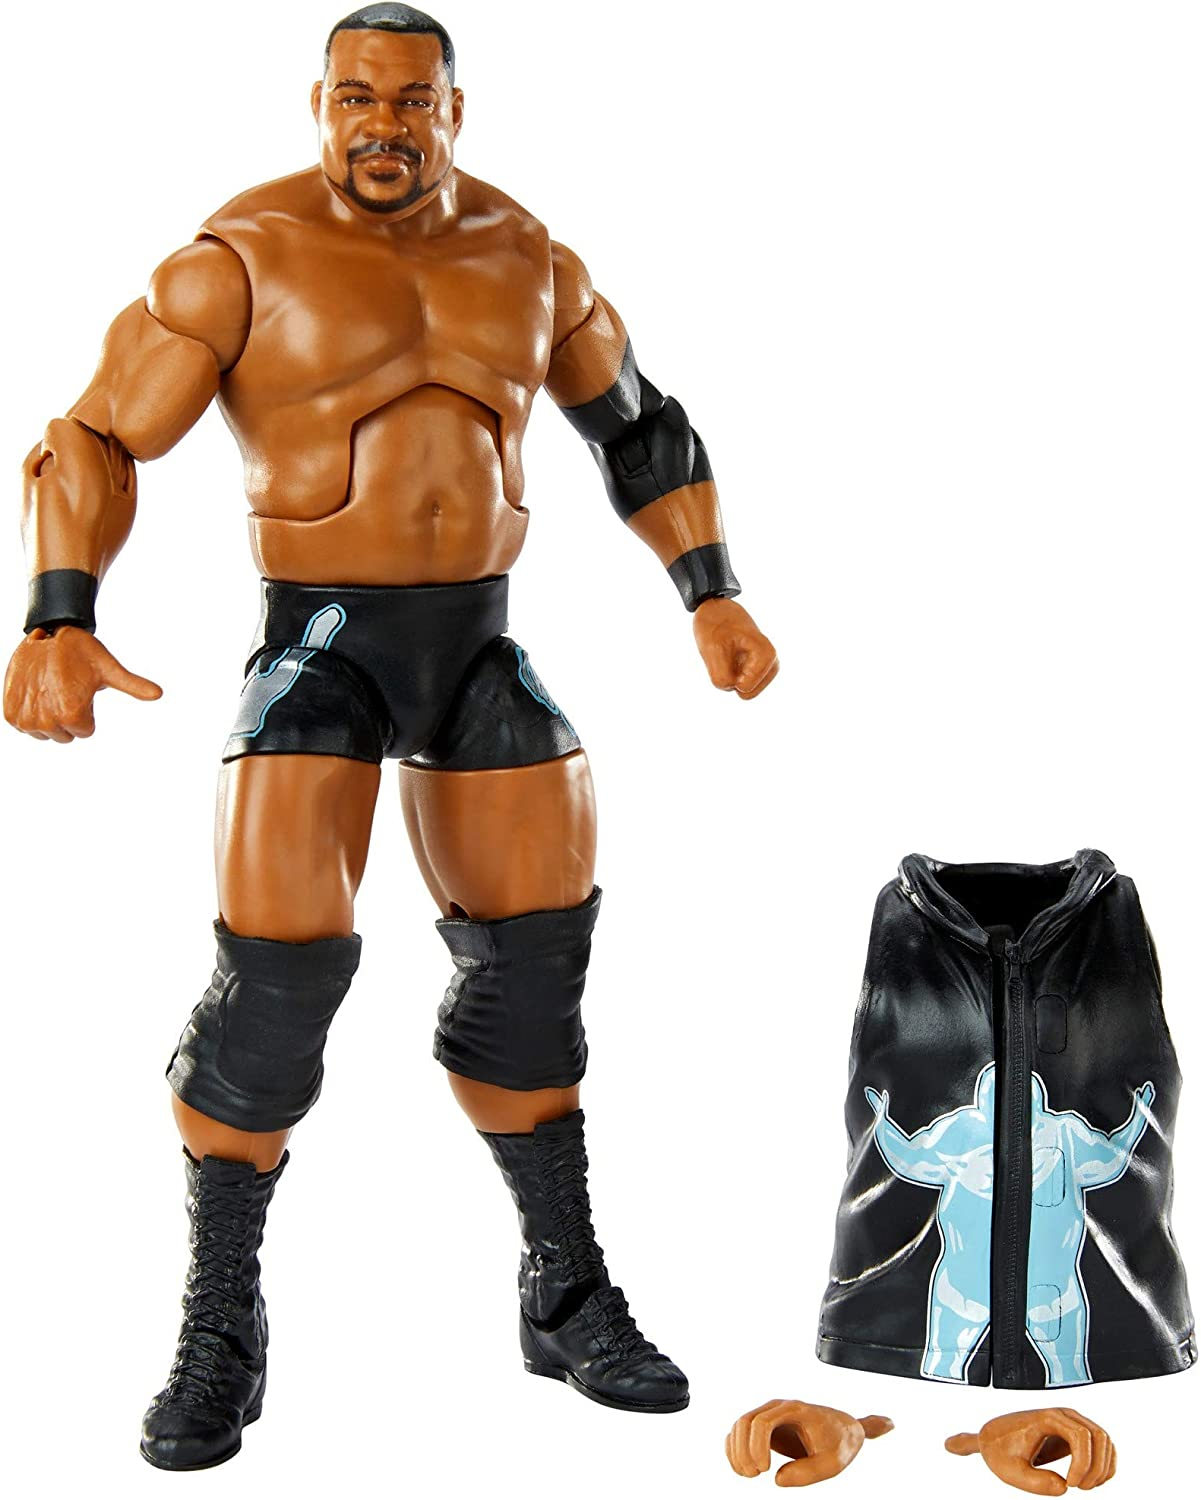 WWE Keith Lee Elite Collection Series # 82 Action Figure 6-in//15.24-cm Posable Collectible Gift Fans Ages 8 Years Old /& Up